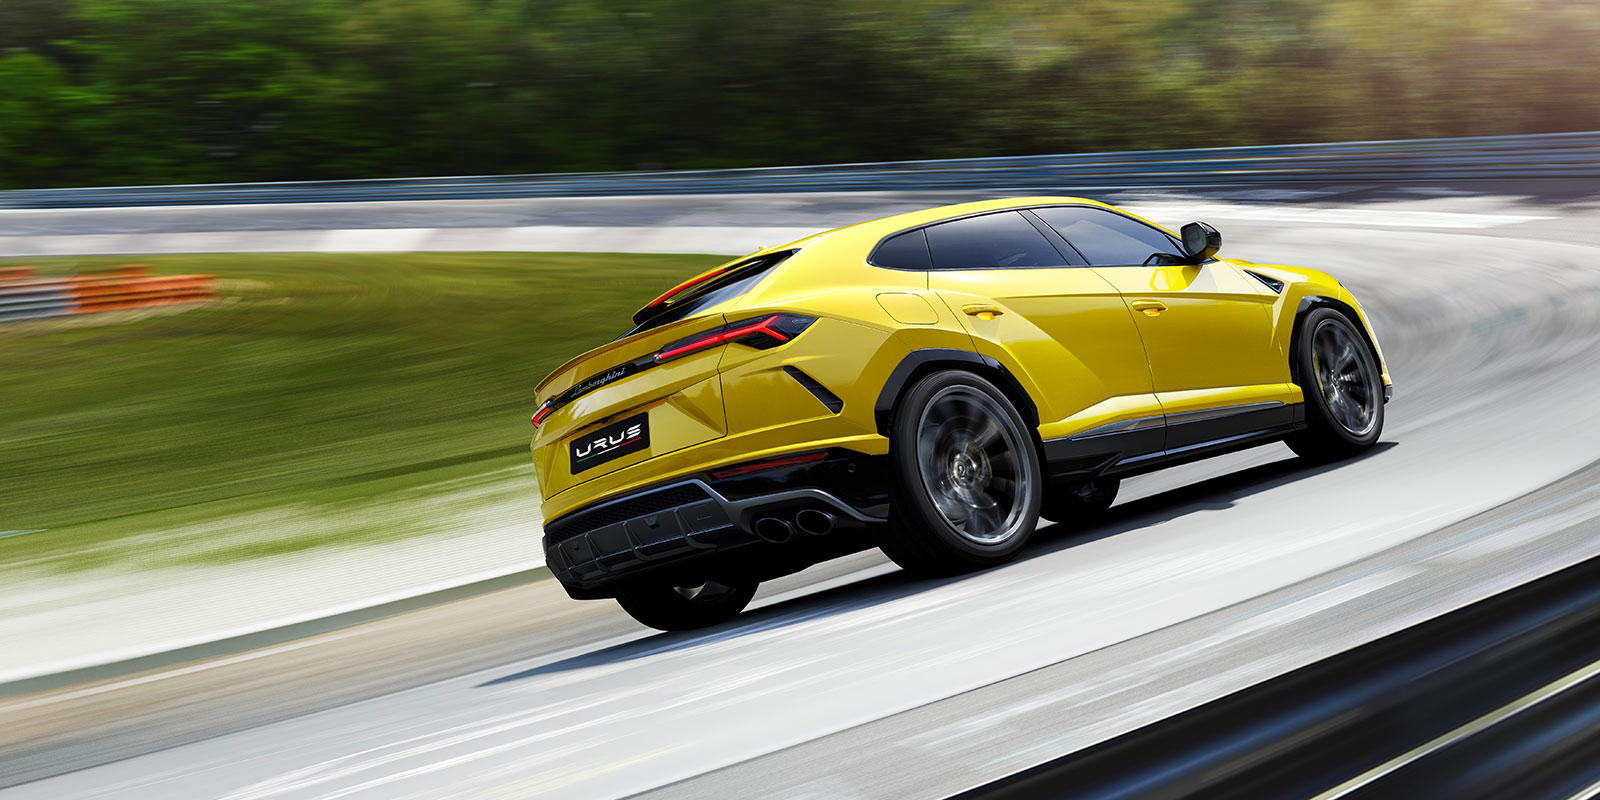 Lamborghini Urus - The World's First Super Sport Utility Vehicle image 8